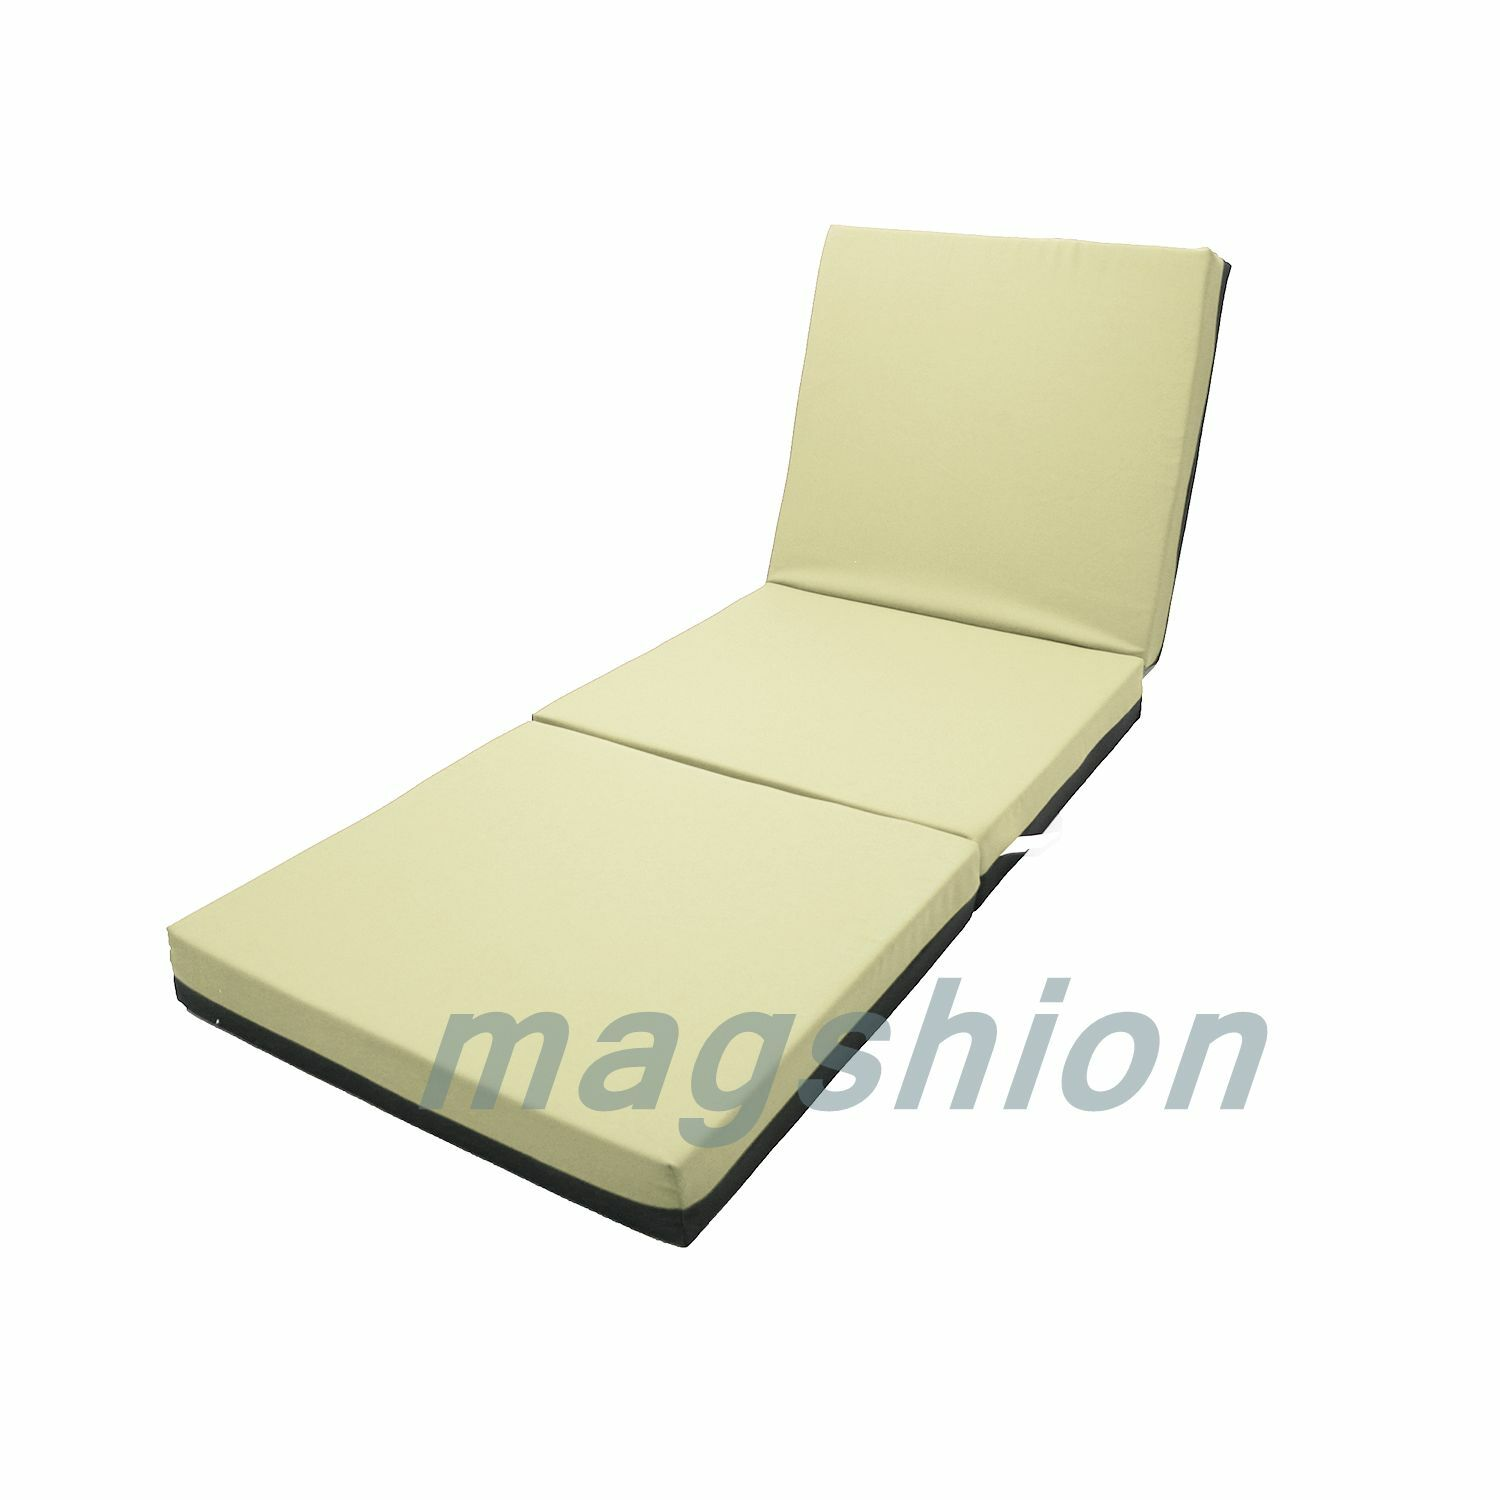 fold up bed chair foam toddler tables and chairs set comfort firm memory folding mattress trifold single twin full queen 4